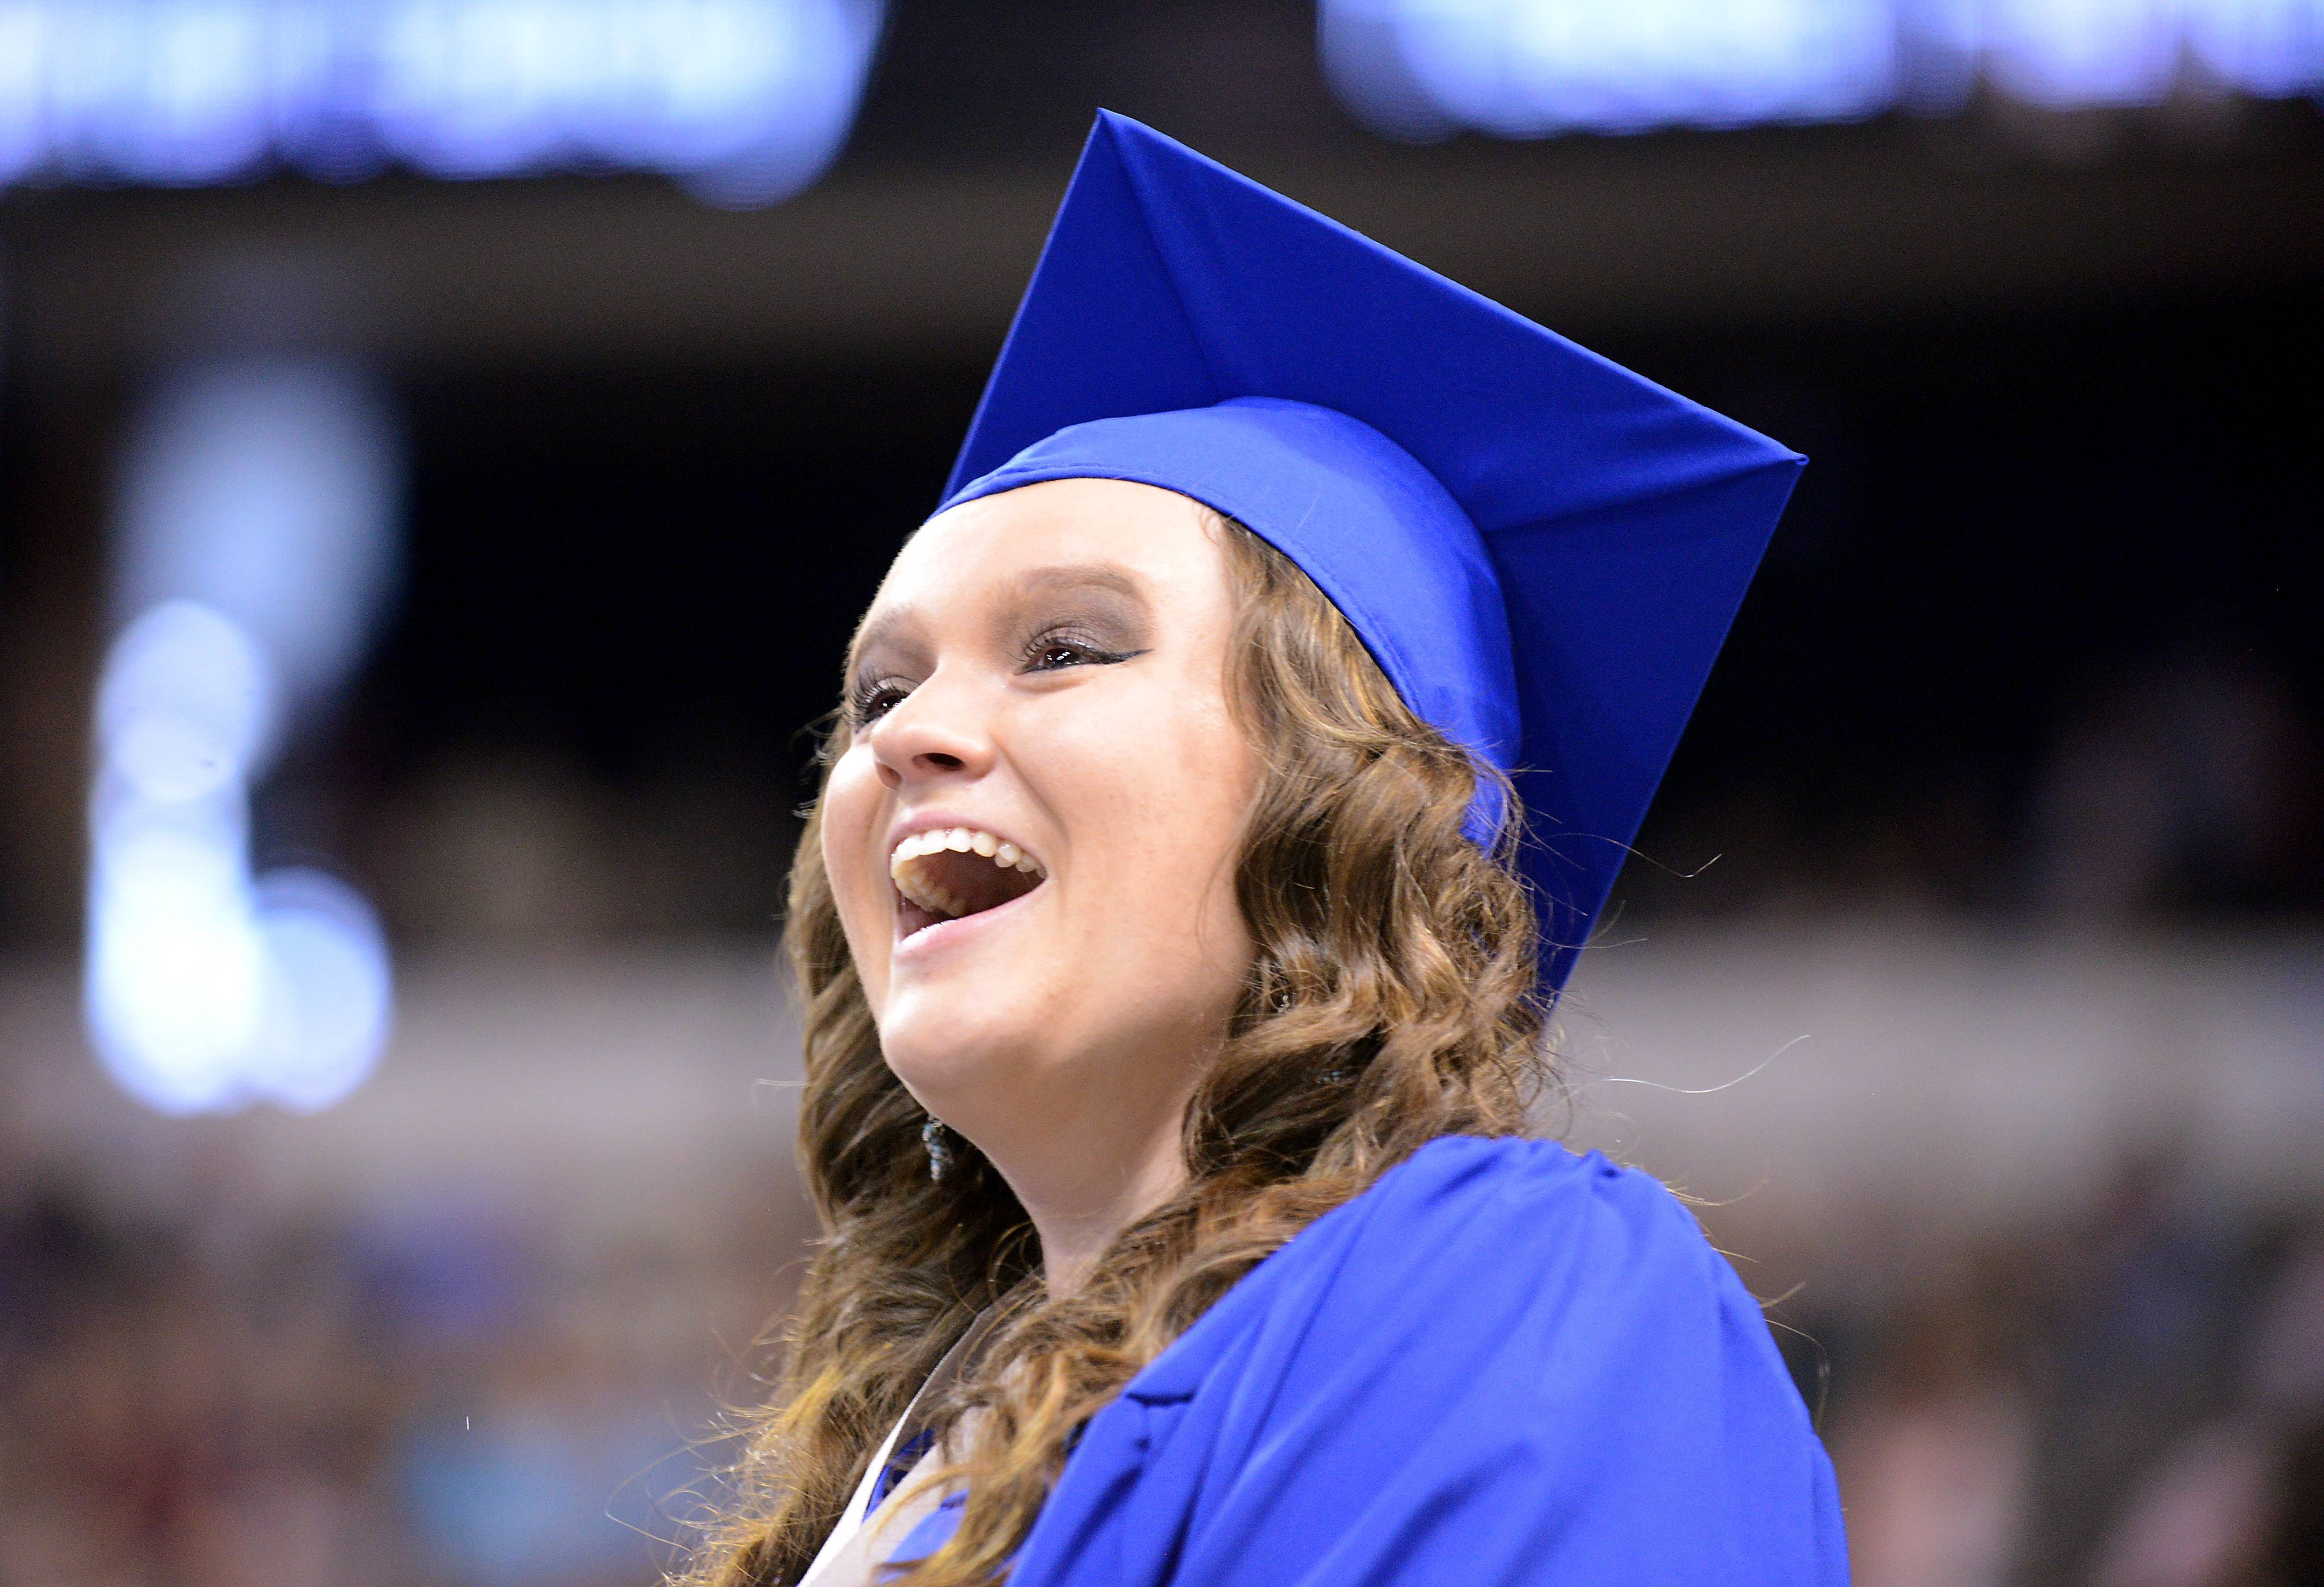 Michelle Cunningham smiles as she spots family in the crowd during the St. Charles North High School graduation ceremony at the Sears Centre in Hoffman Estates Sunday.